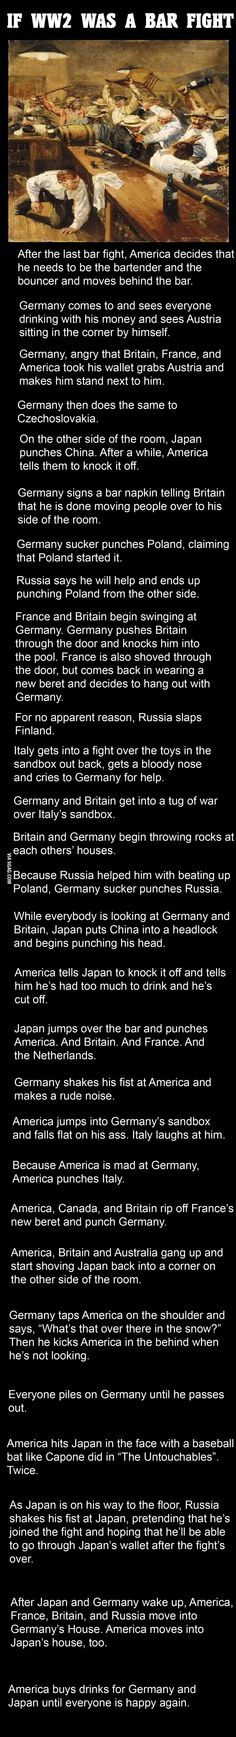 If World War 2 Was A Bar Fight